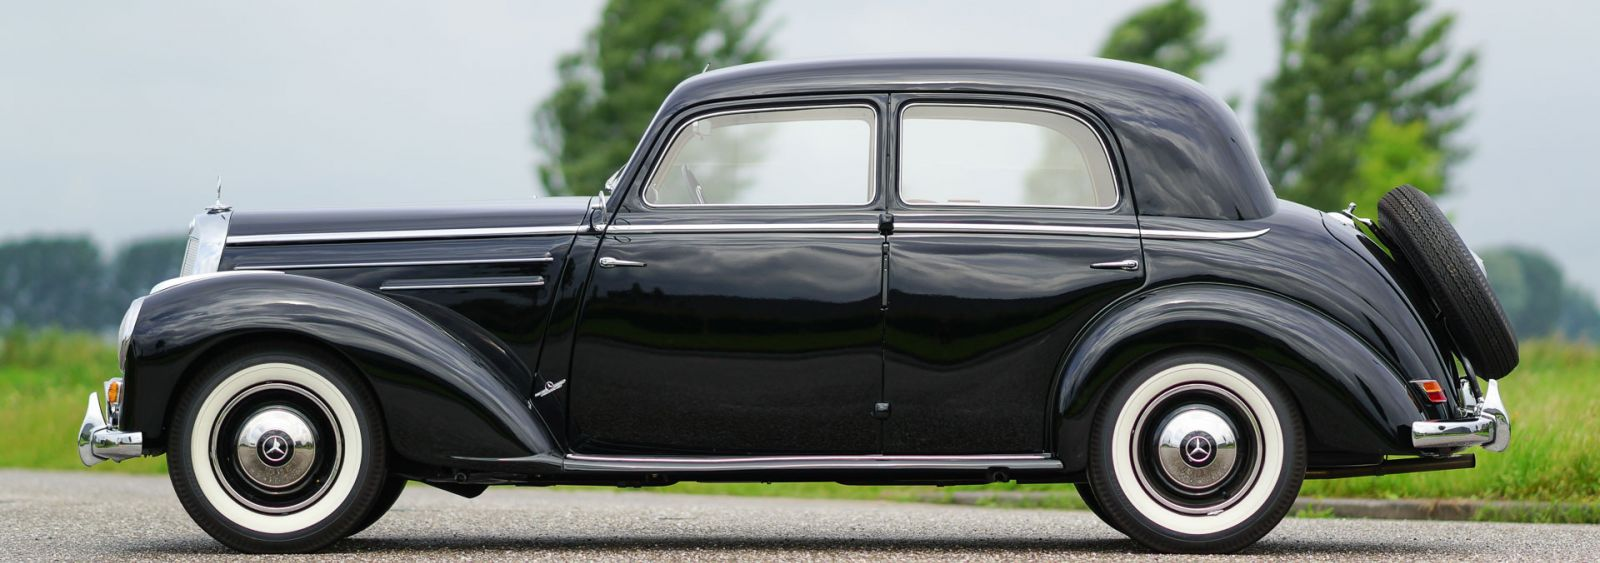 mercedes benz 220 limousine 1952 classicargarage fr. Black Bedroom Furniture Sets. Home Design Ideas